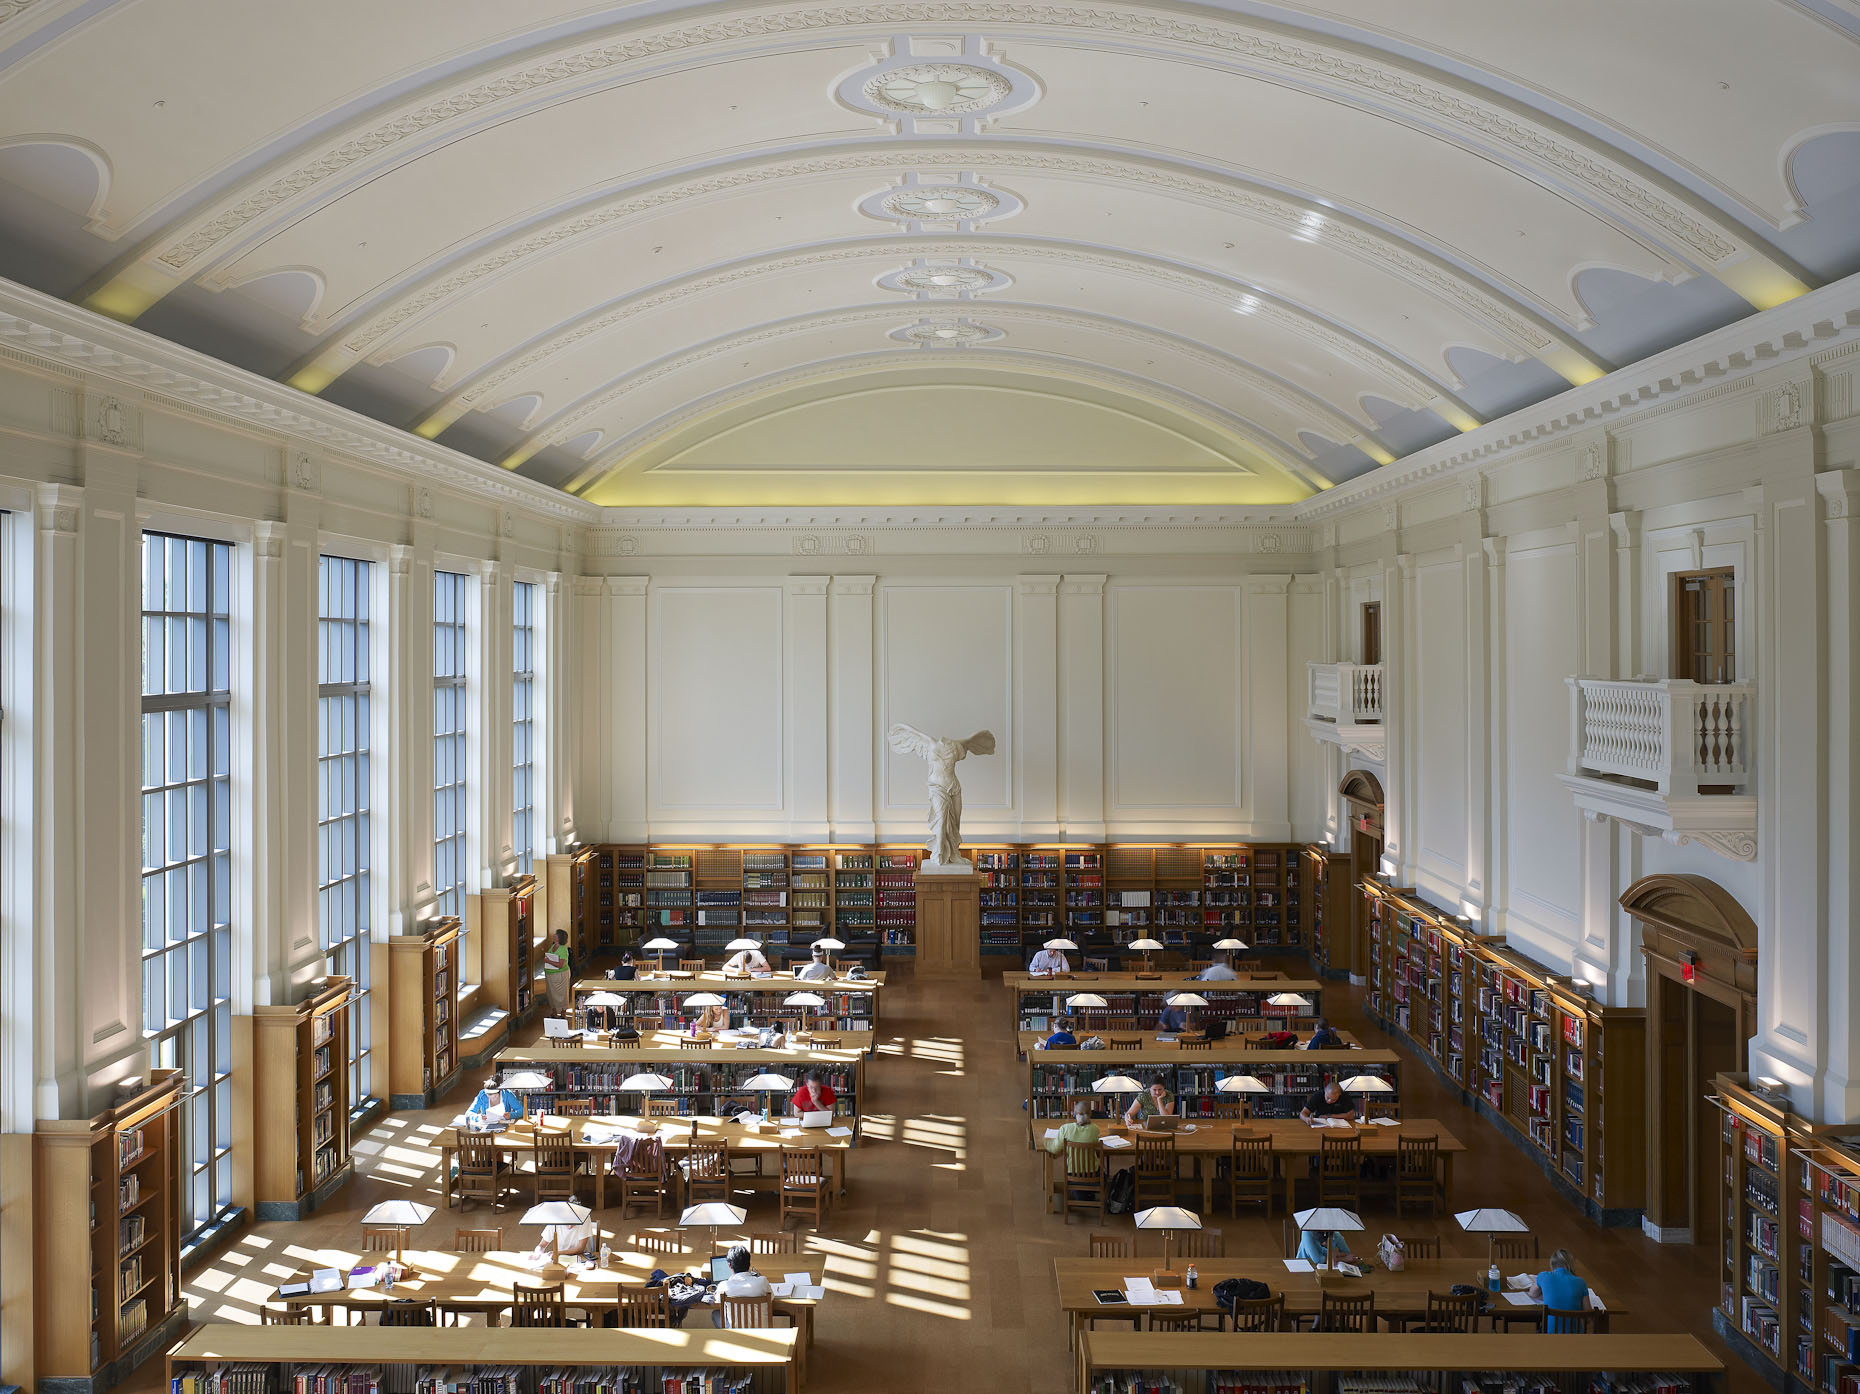 William Oxley Thompson Memorial Library at The Ohio State University by Gund Partnership & Acock Associates